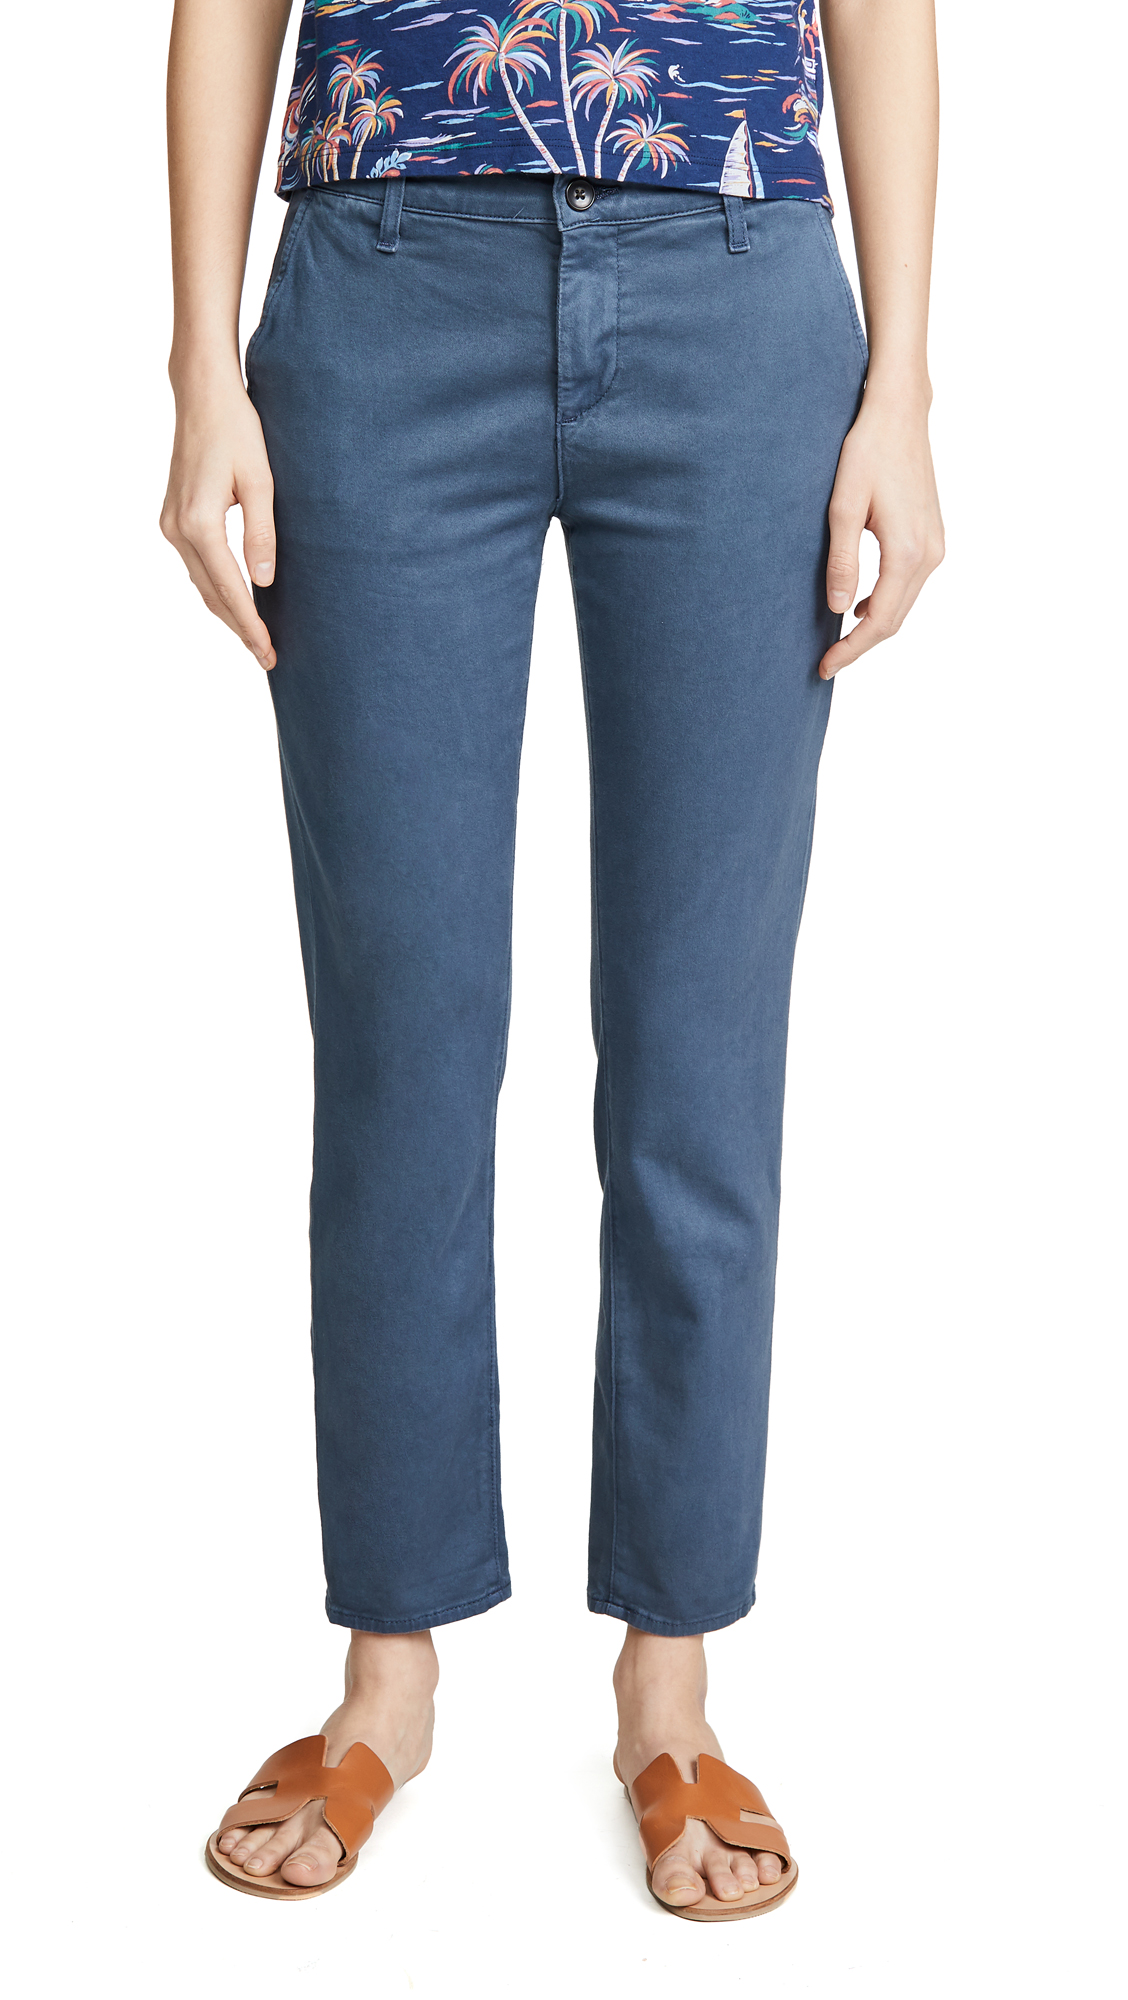 AG The Caden Tailored Trousers - Sulfur Sodalite Blue